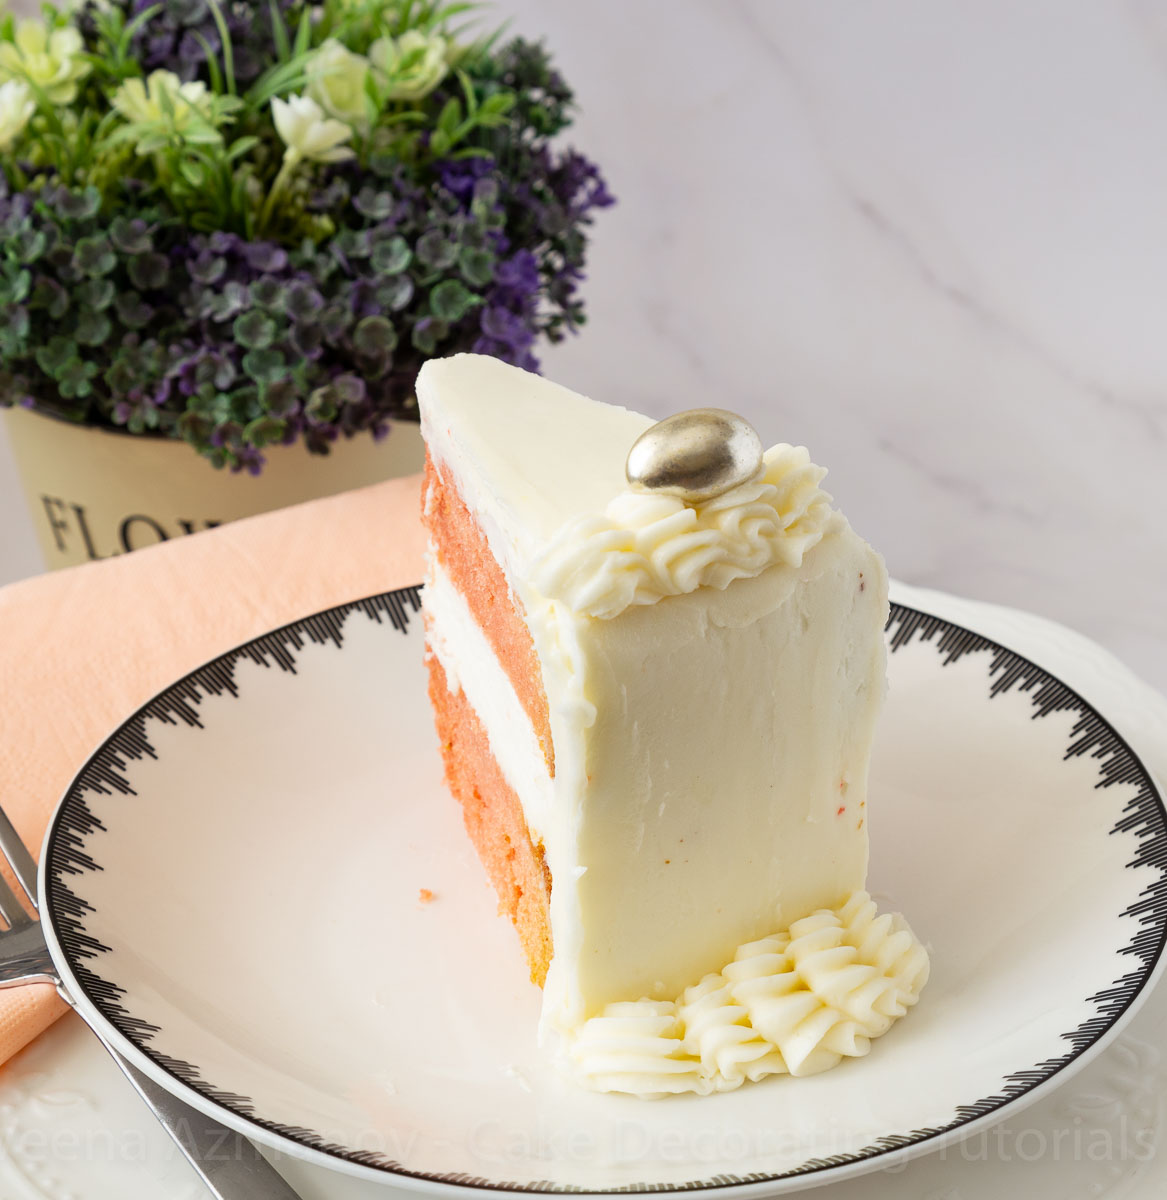 Slice of cake on a white plate.